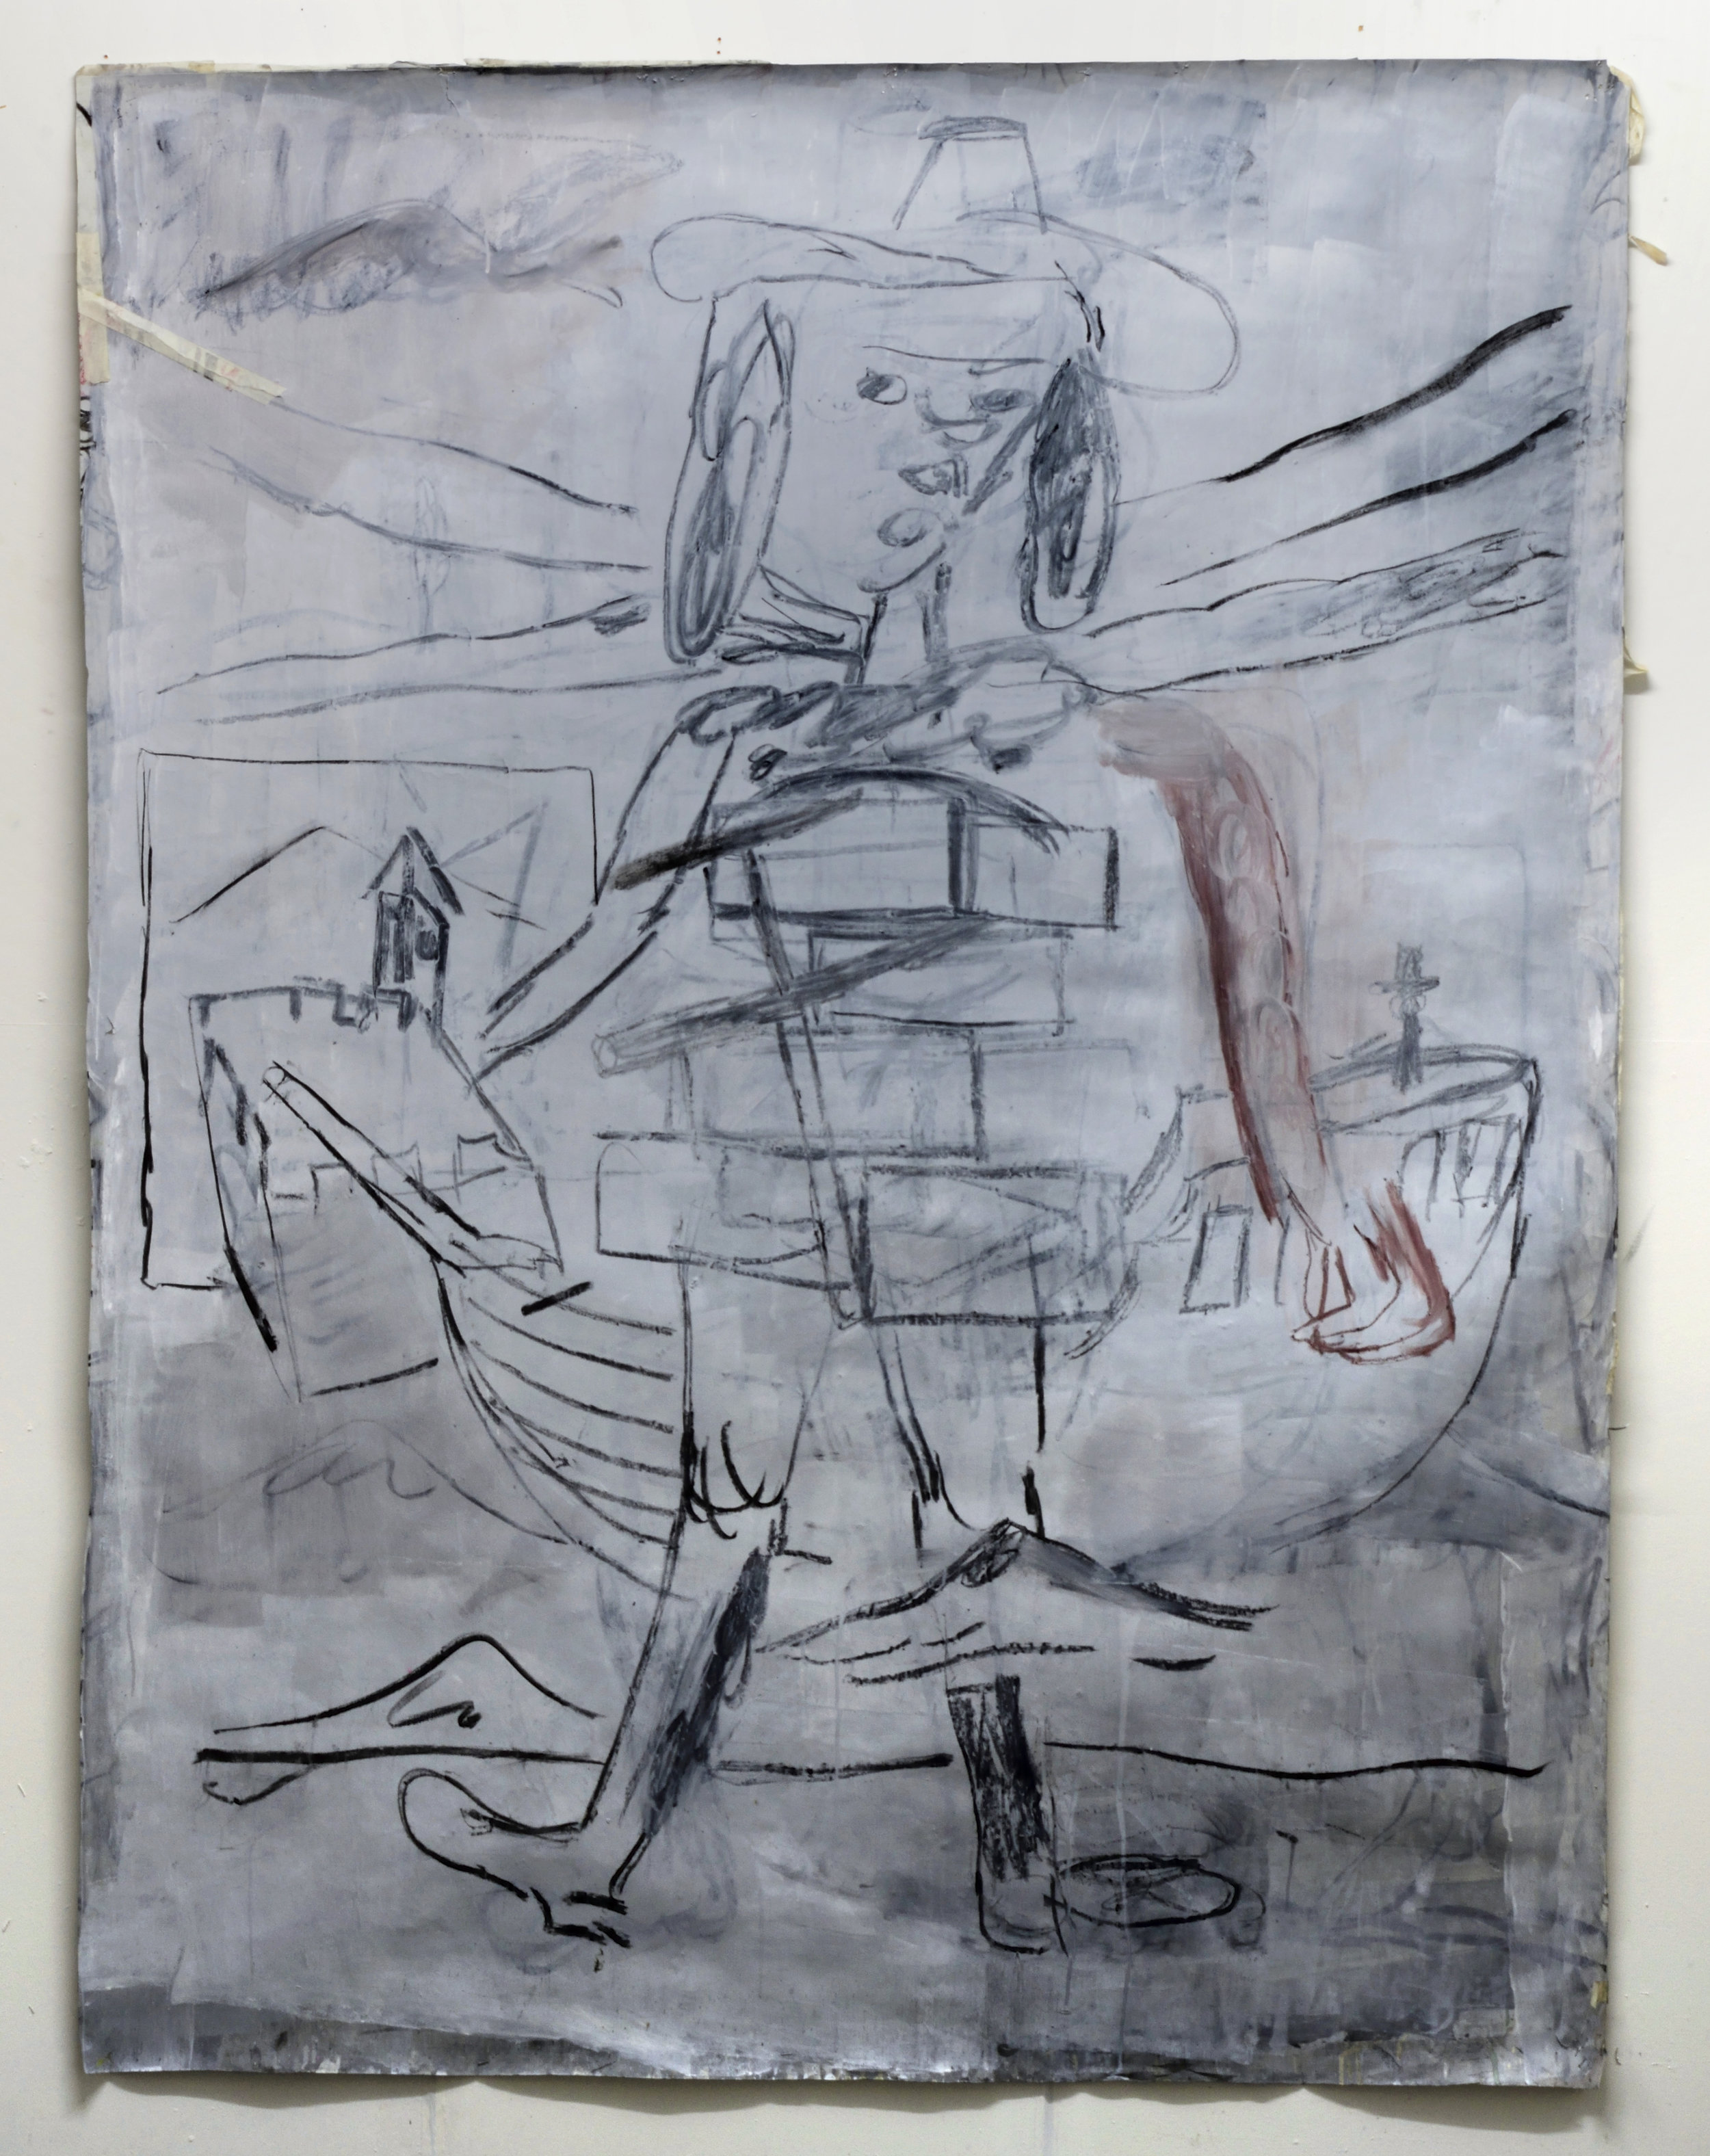 'Interzone Pioneer' 2018   Charcoal and pastel on paper. 200 x 150 cm